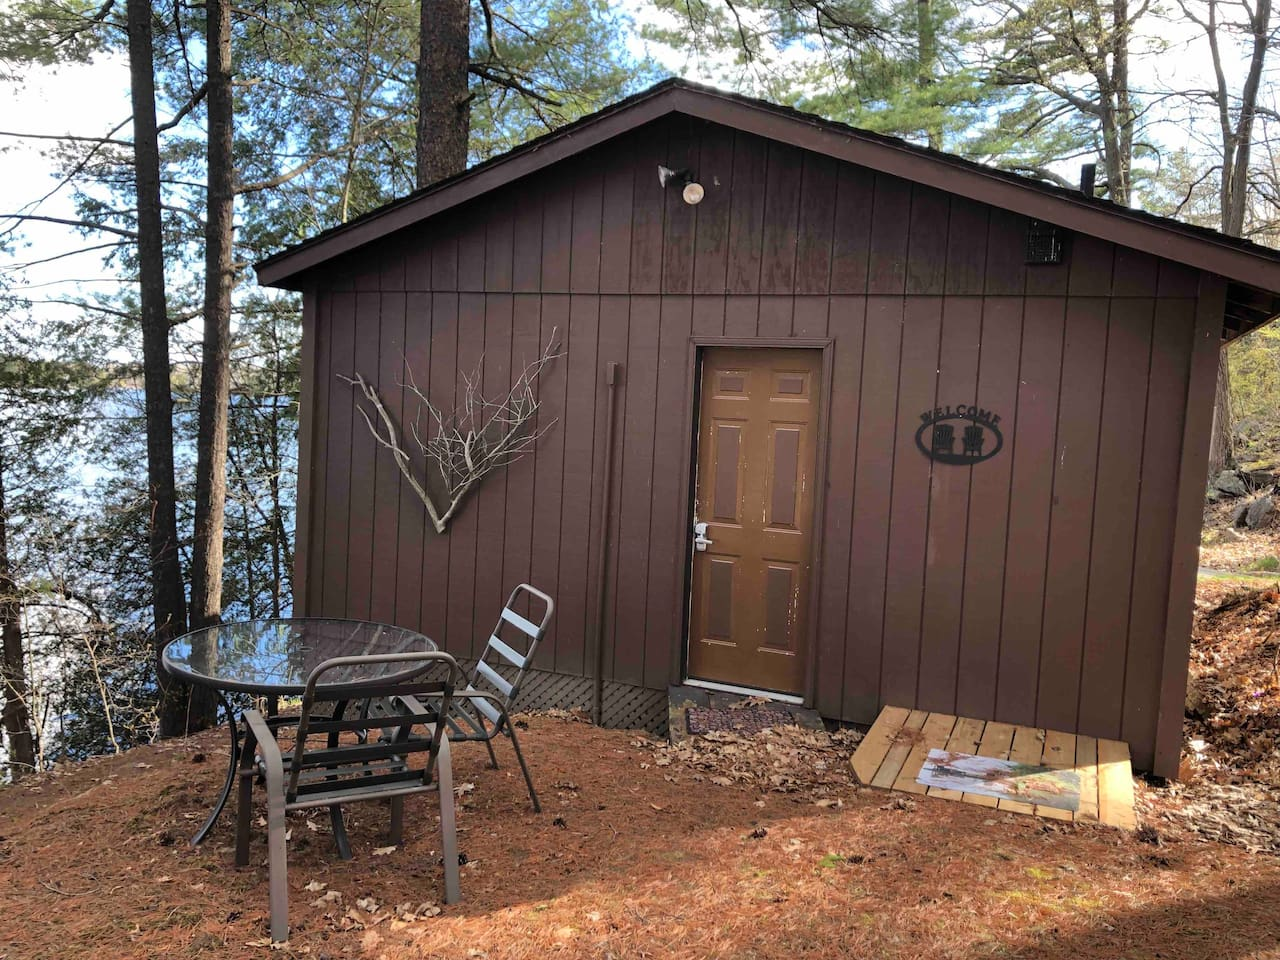 Little cabin on the lake. Very quiet getaway - perfect for two.  Hiking, biking, swimming, kayaking, paddle boat rides, unlimited day tripping opportunities -just ask for recommendations. Or, enjoy the solitude at the lake! Opportunities are endless.